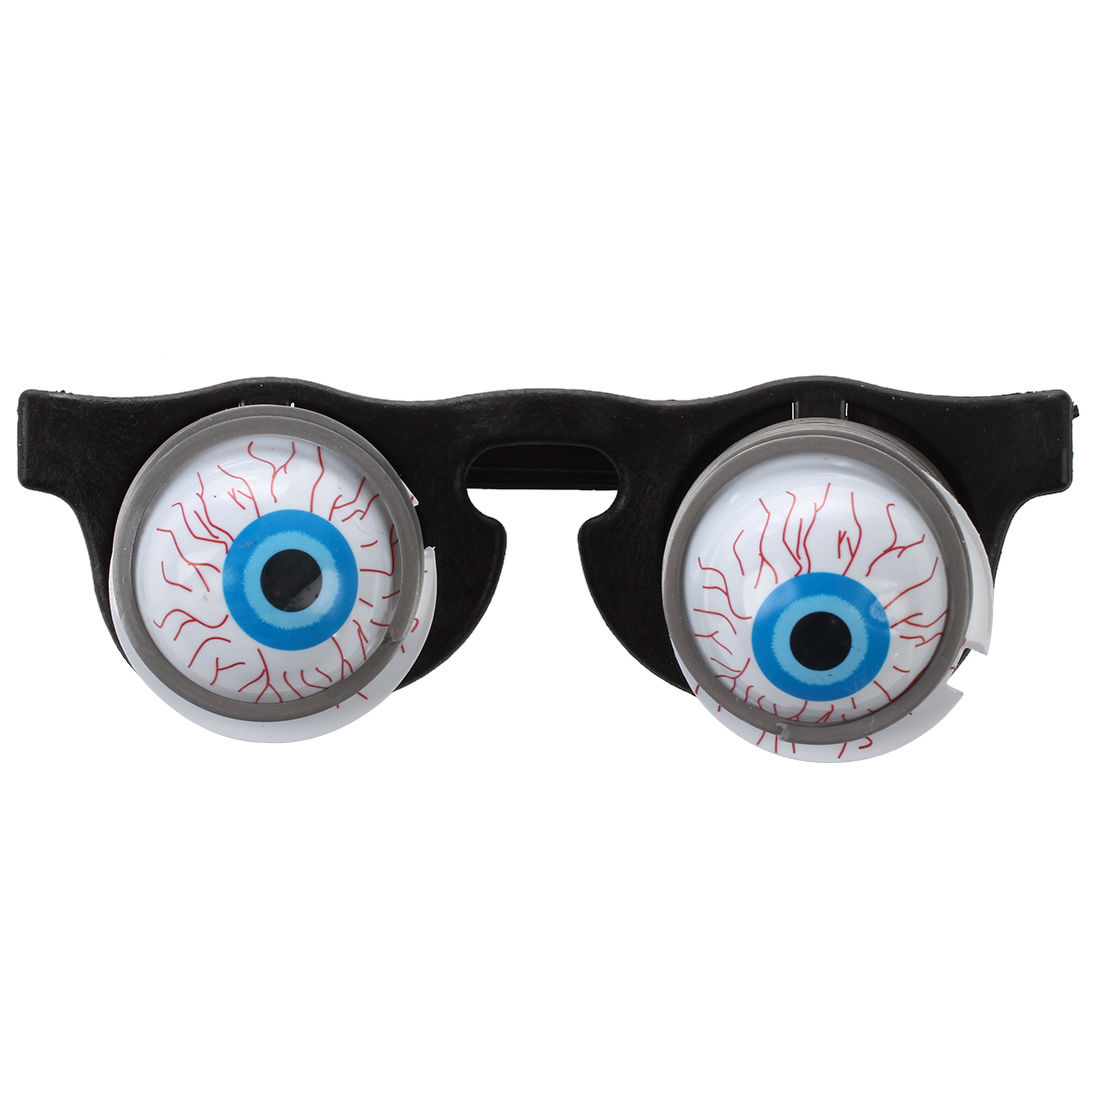 HOT SALE Halloween Carnival Party Plastic Joke Horror Shock Pop Eyes Glasses Toy